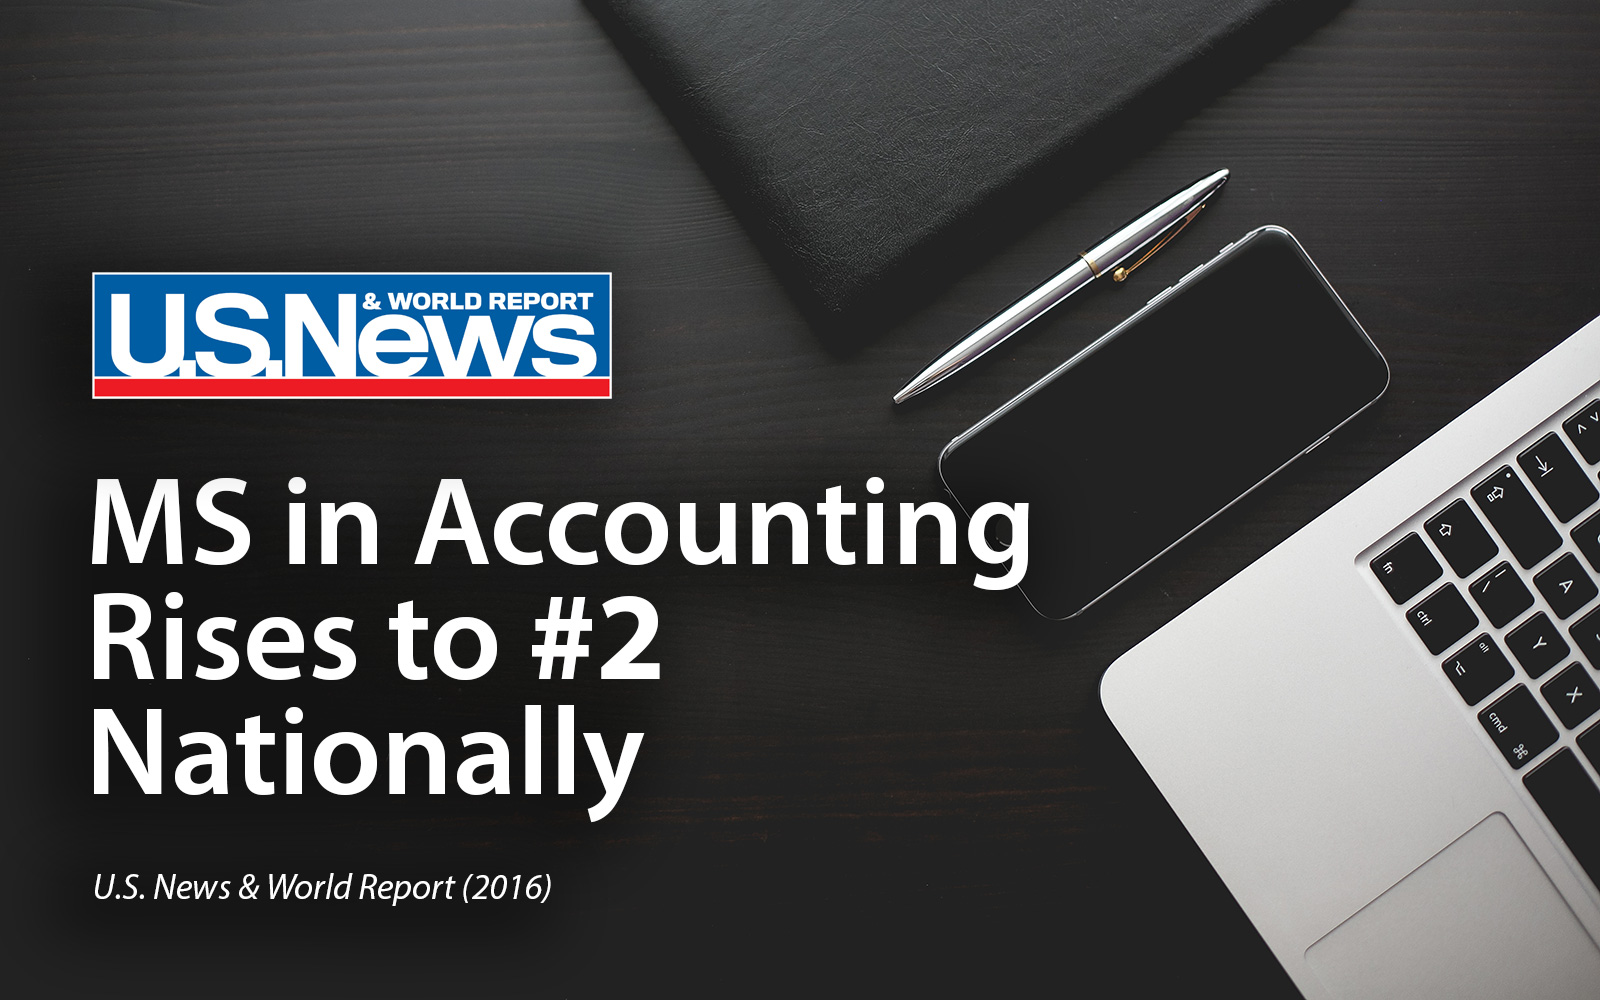 MS in Accounting Rises to #2 Nationally | U.S. News